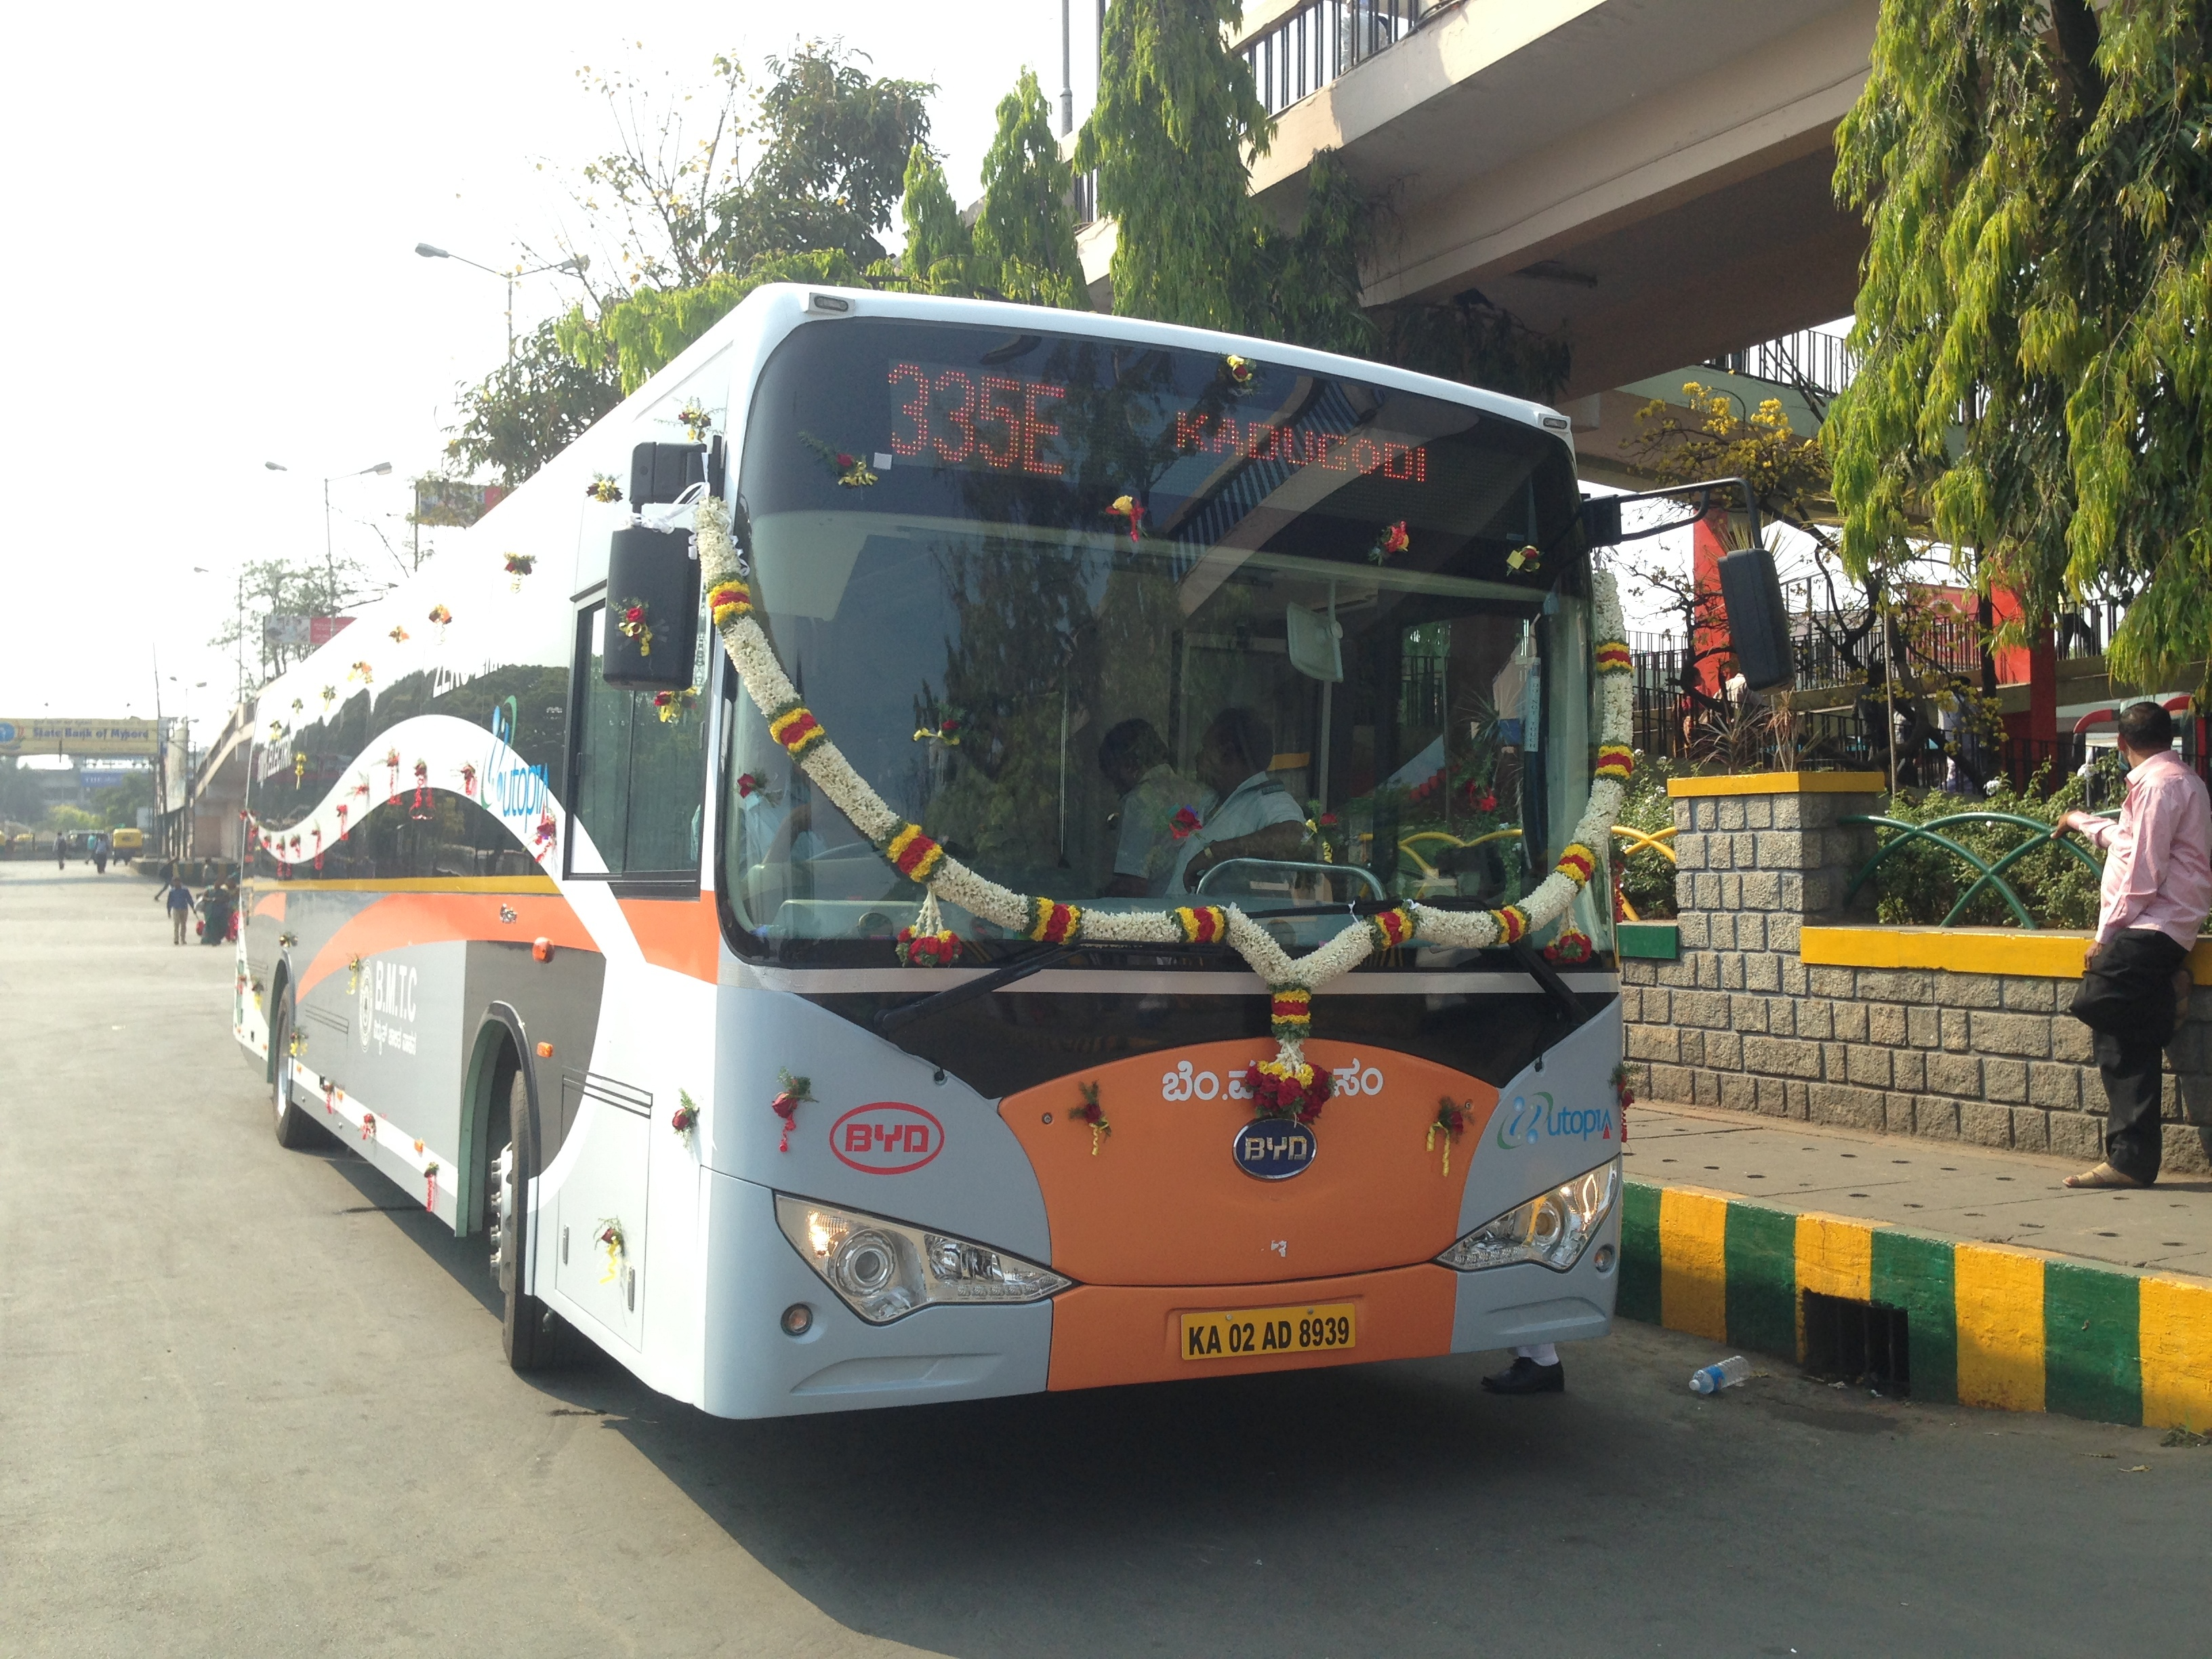 The first long-range, all-electric bus in India arrived from BYD Company Ltd. in Feb. 2014. The bus achieves up to 24 hours of service on a single night-time charge -- longer than any other electric bus in the market today. (Photo: Business Wire)